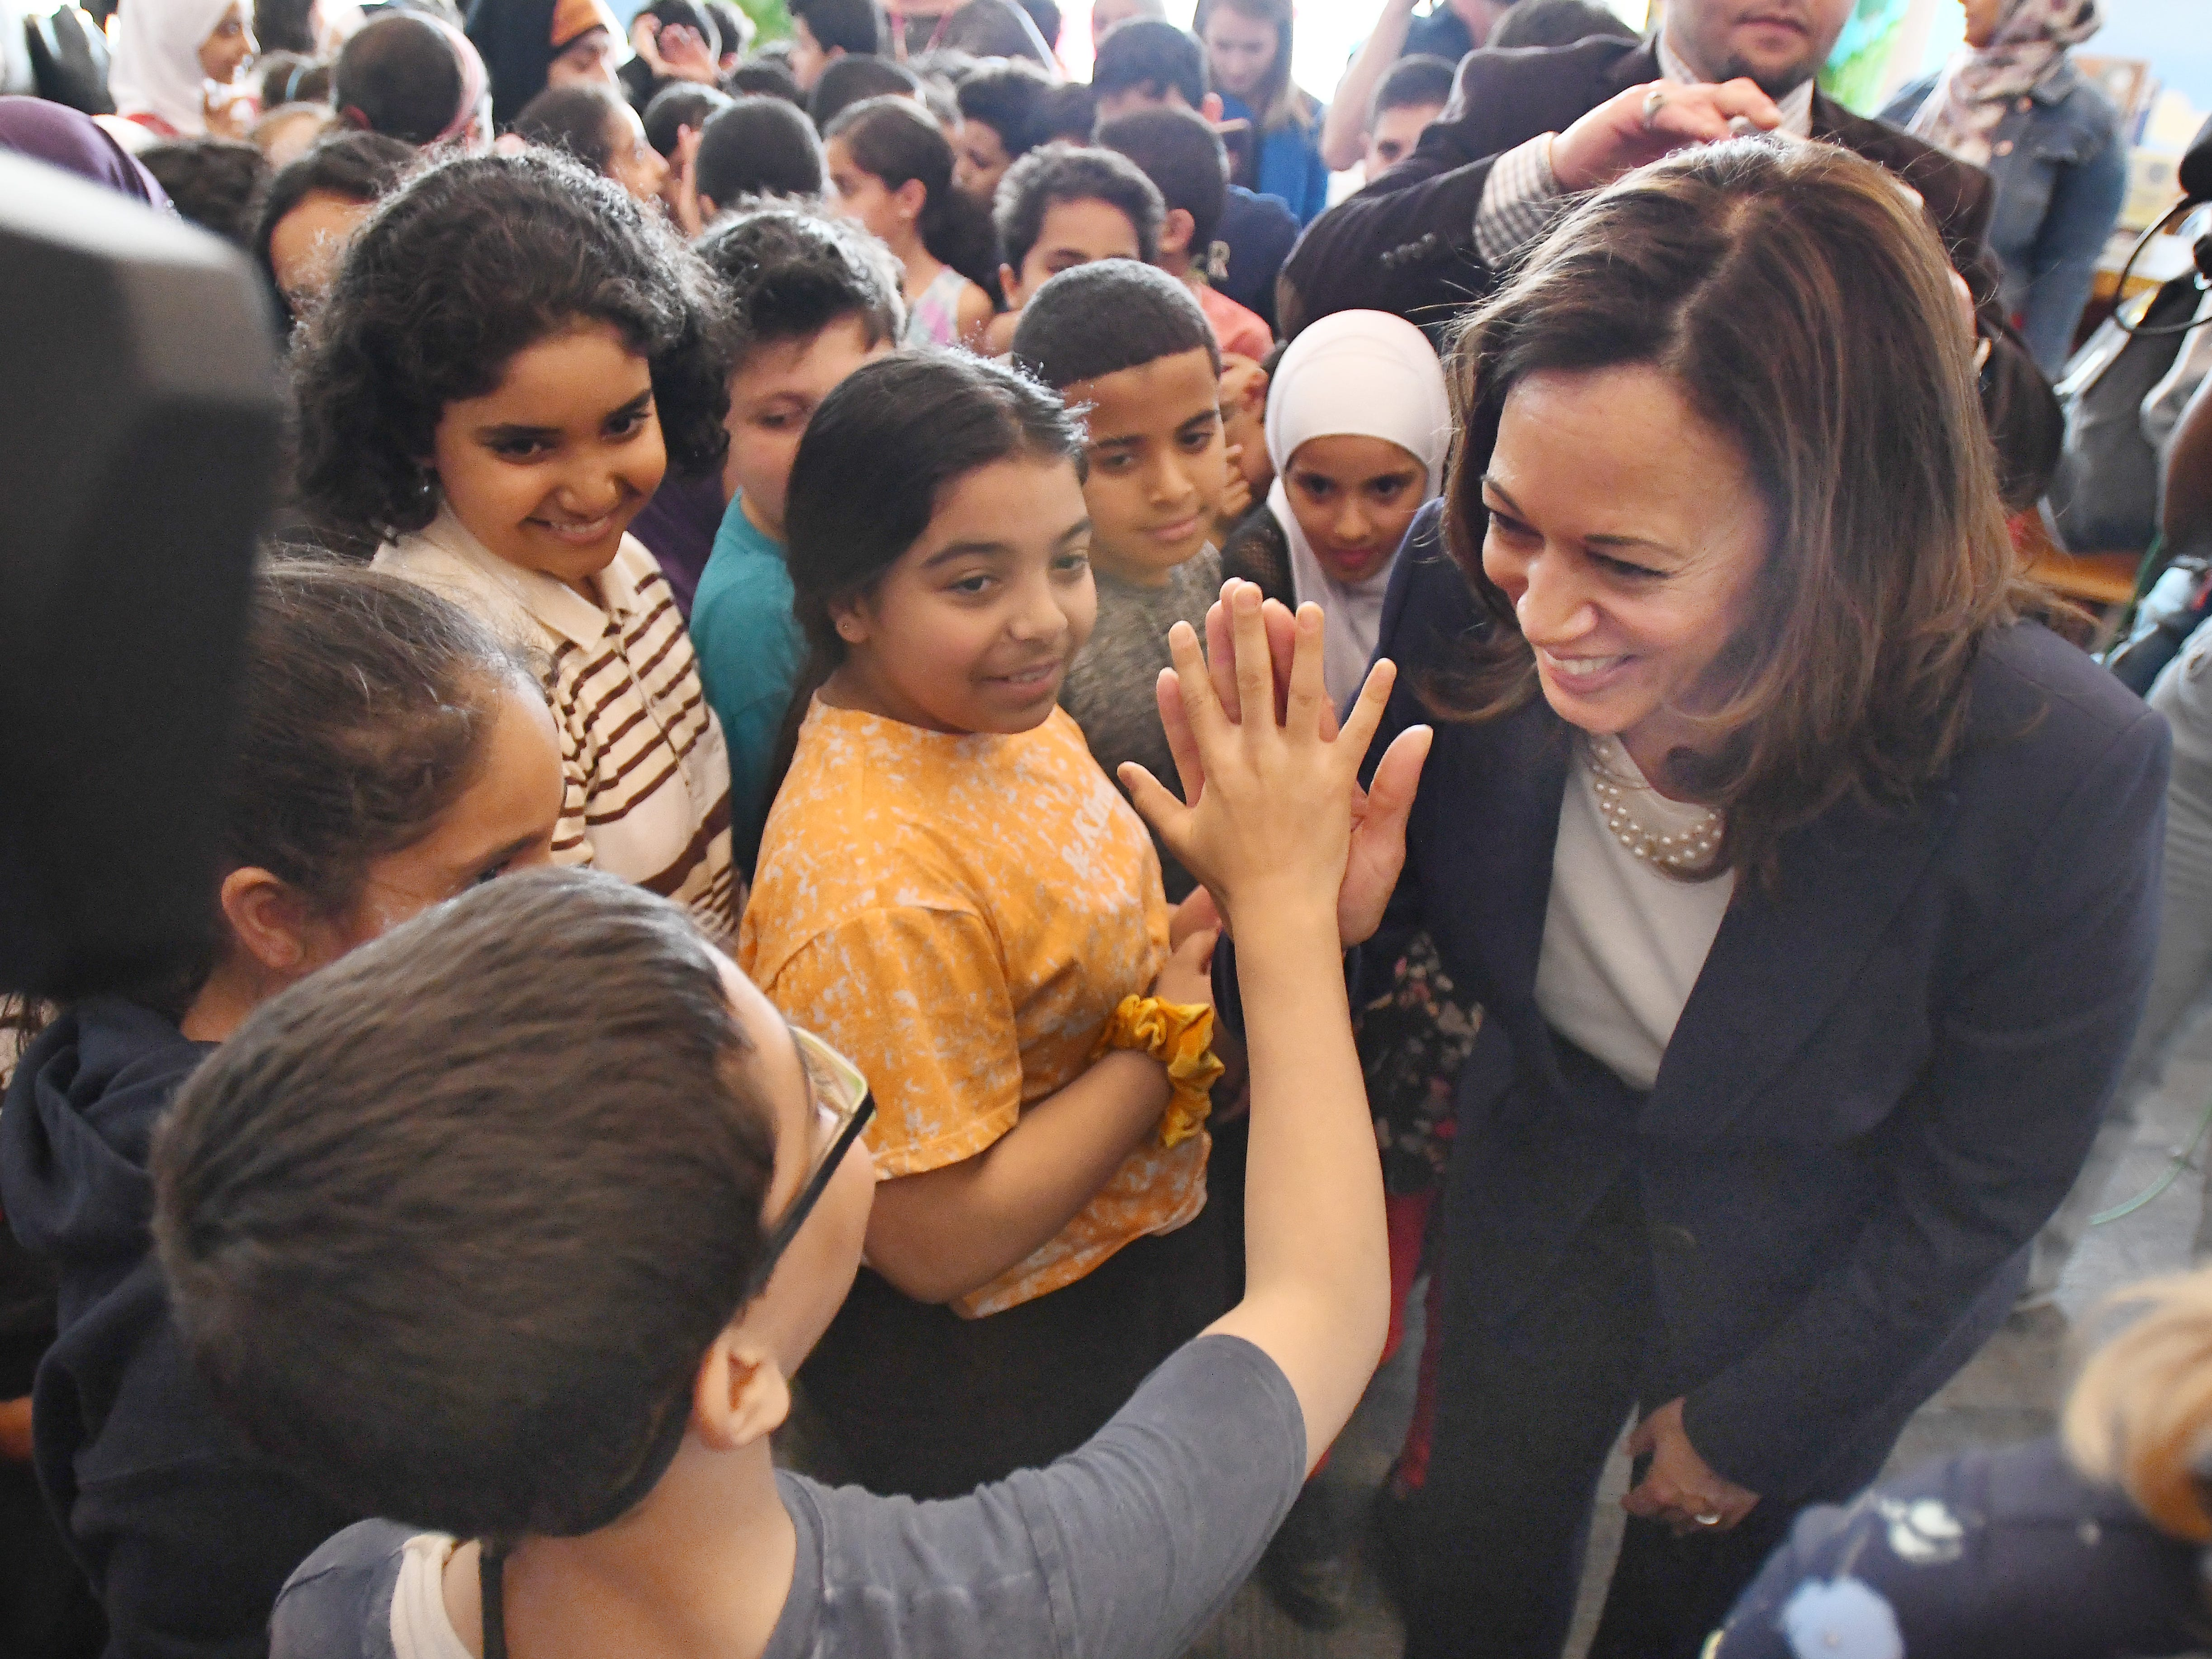 U.S. Senator Kamala Harris 'high-5' a Dearborn 4th grade student at Miller Elementary School after a visit from the Democratic Presidential candidate.